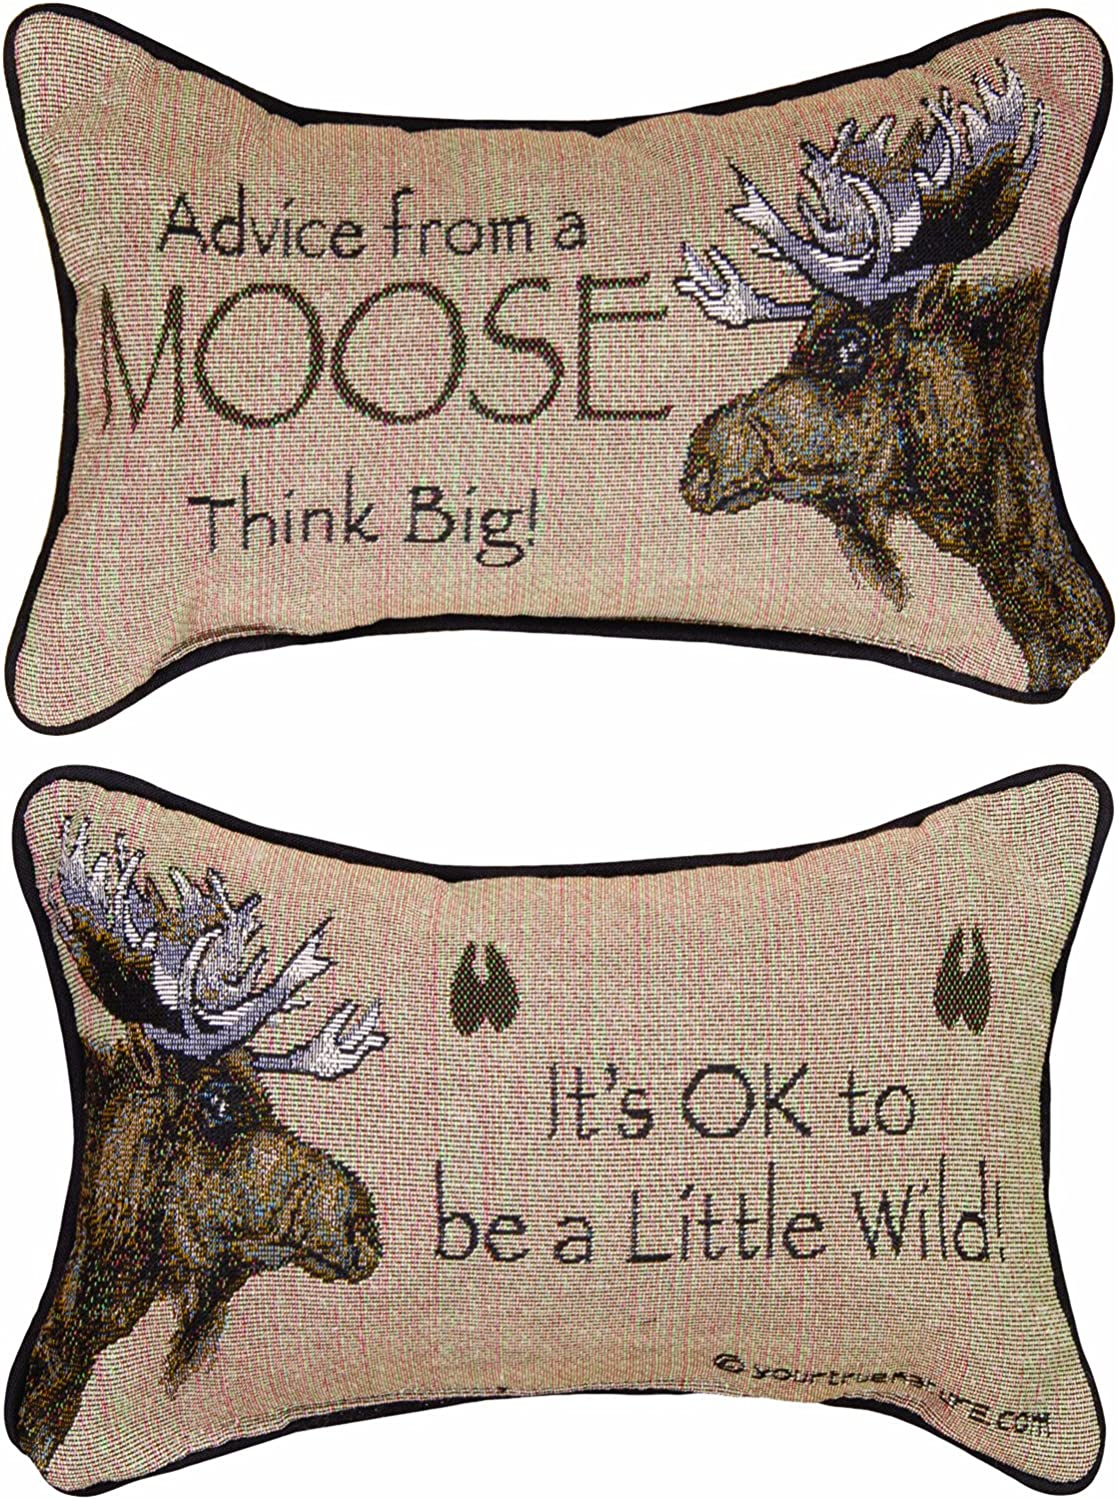 Manual The Lodge Collection Reversible X 12.5 Max Max 59% OFF 86% OFF Throw Pillow 8.5-